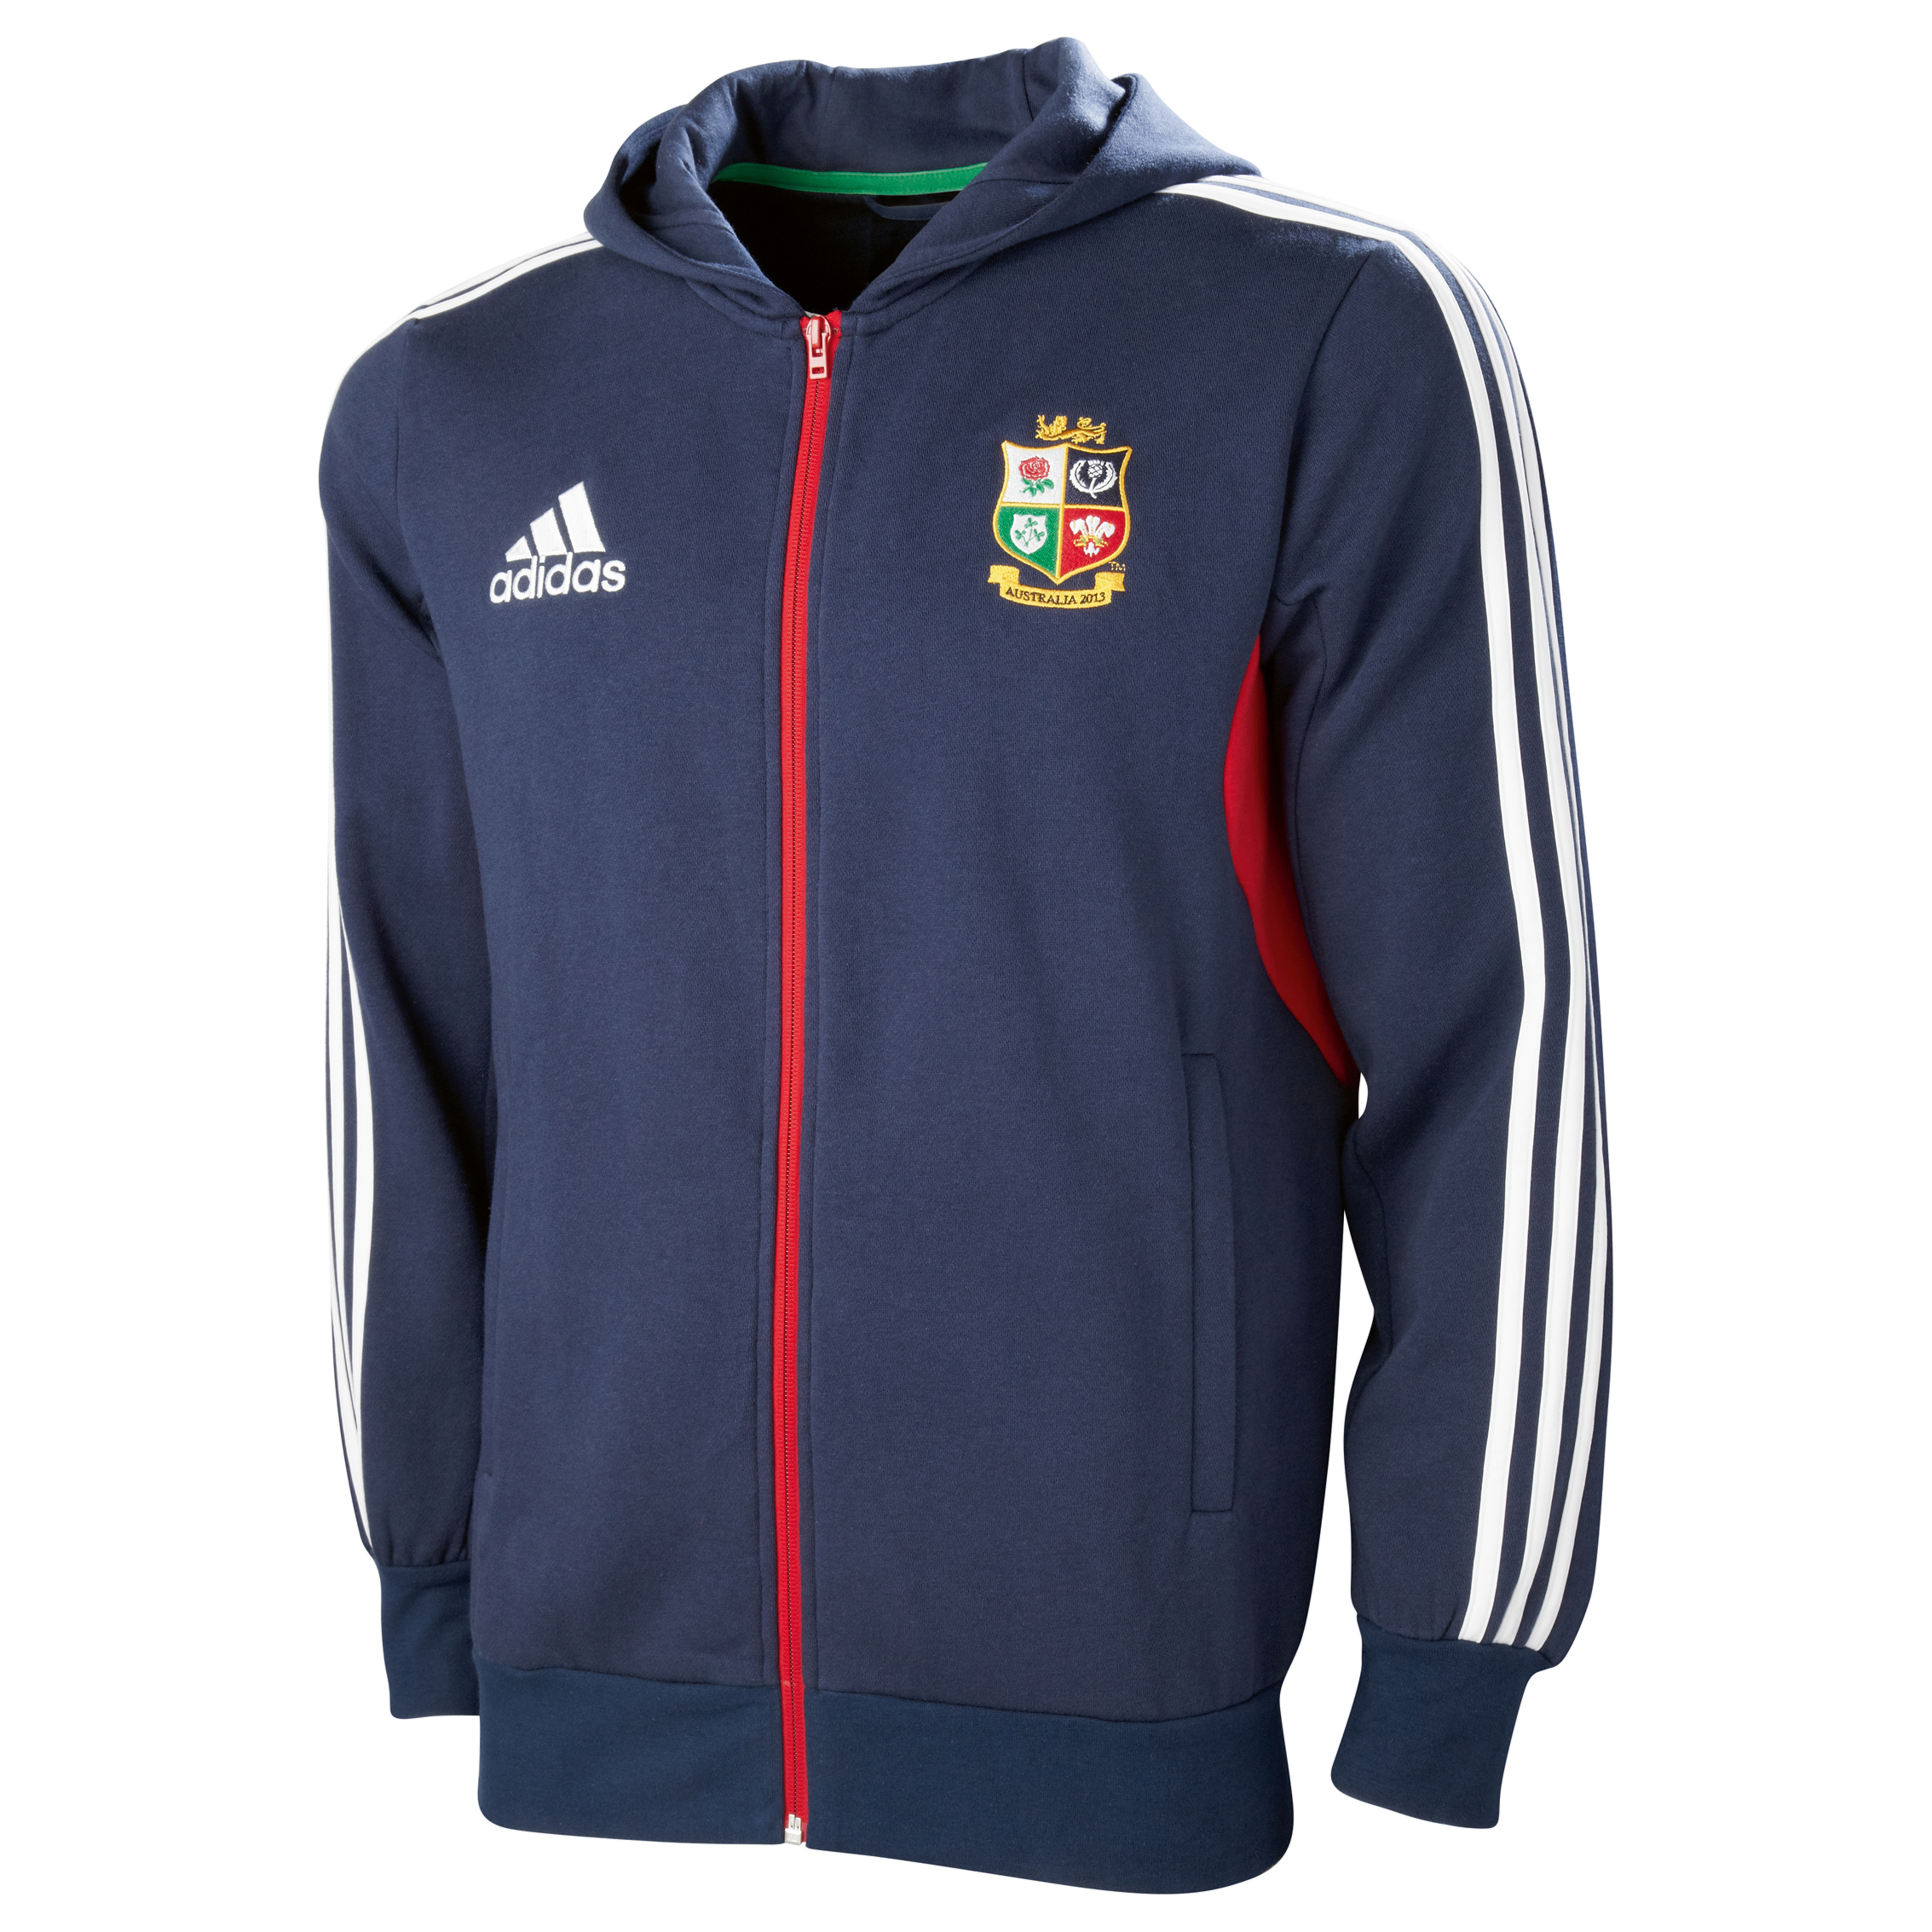 adidas British and Irish Lions Hooded Sweatshirt - Collegiate Navy/White